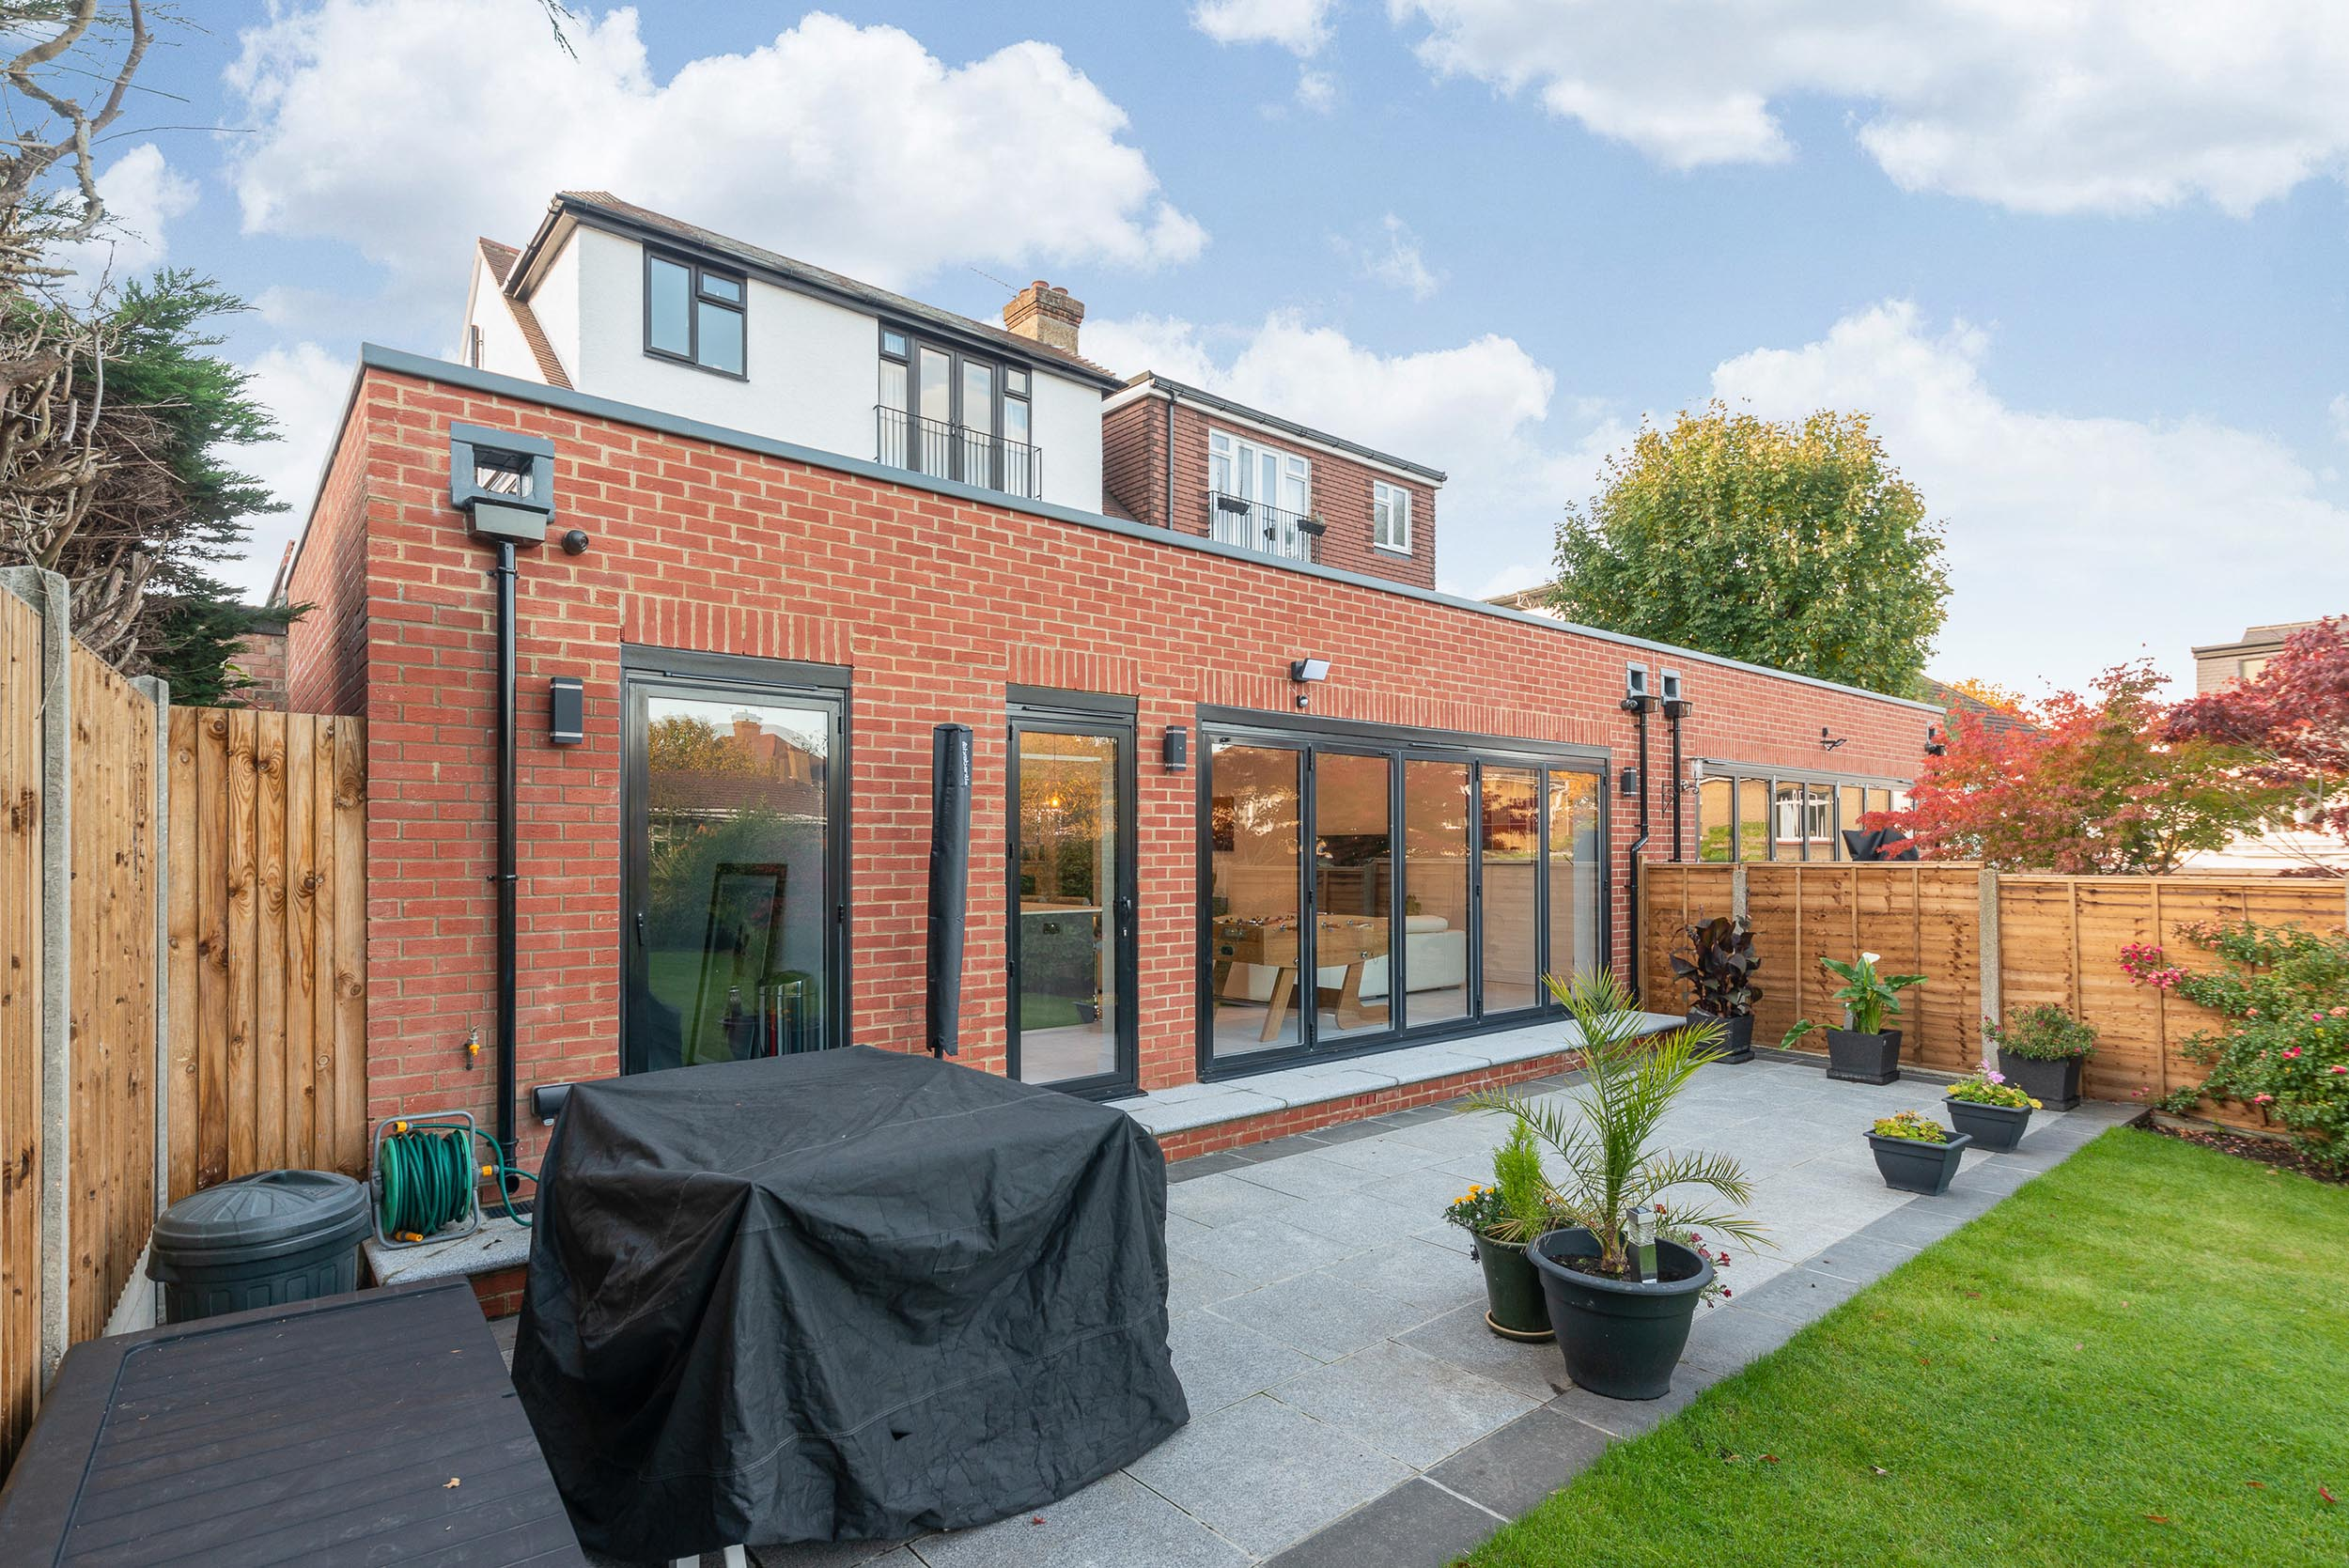 61-and-63-Wades-Hill-N21-1BD-Small-Res-18